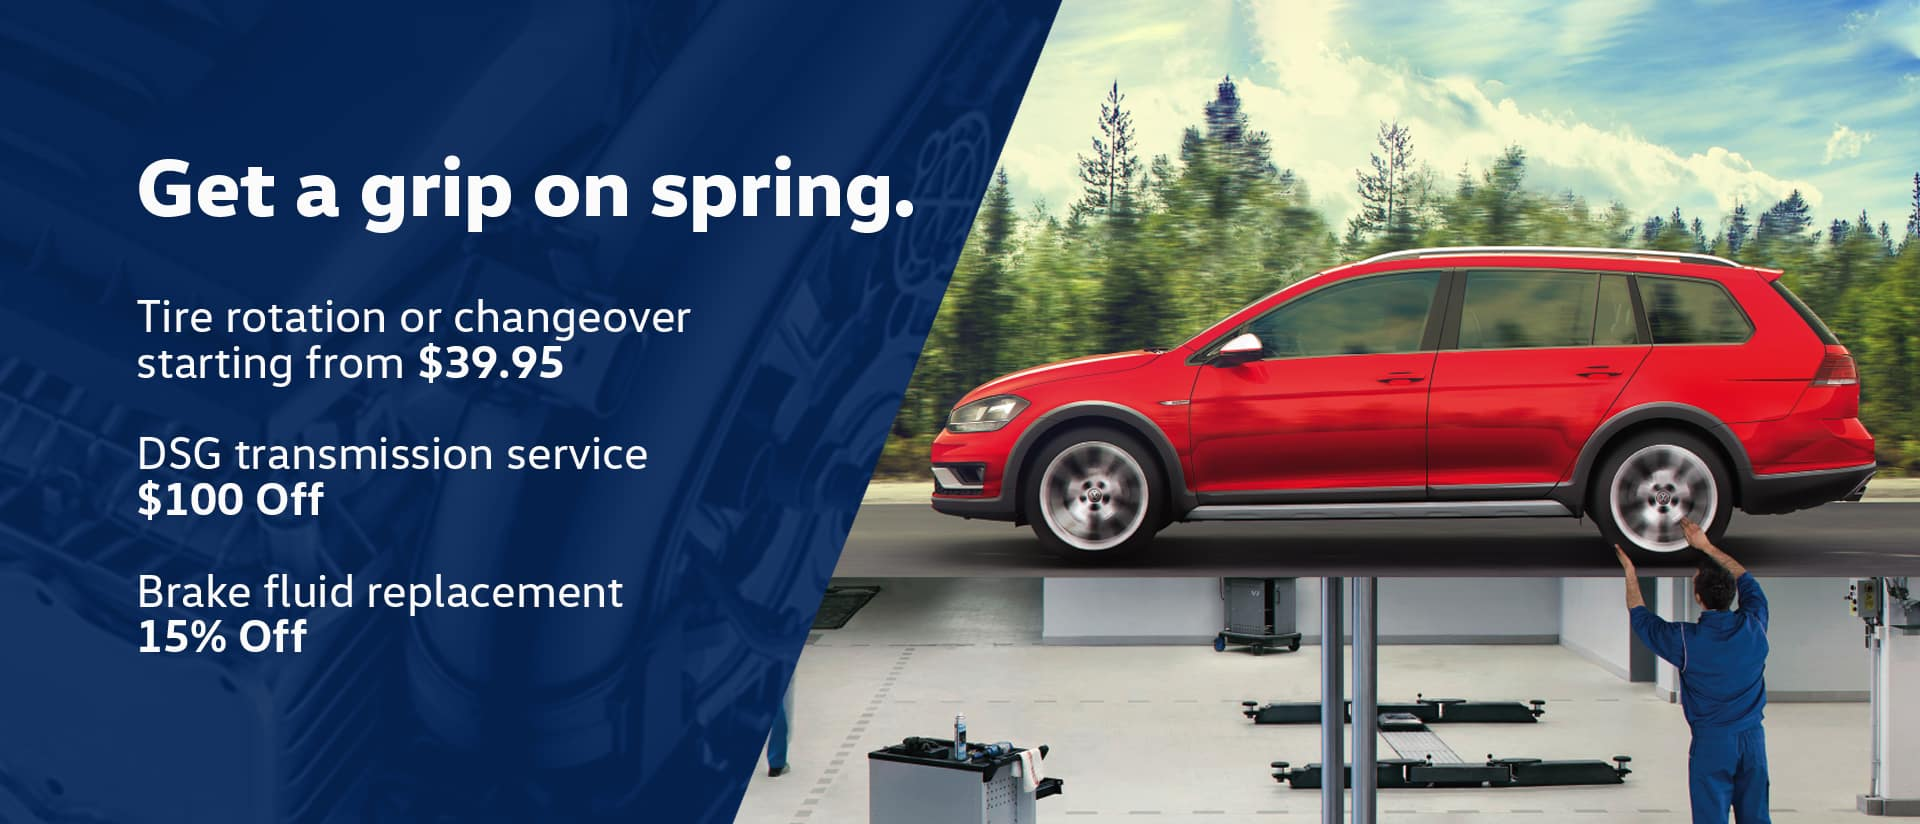 Volkswagen Spring Maintenance Essentials